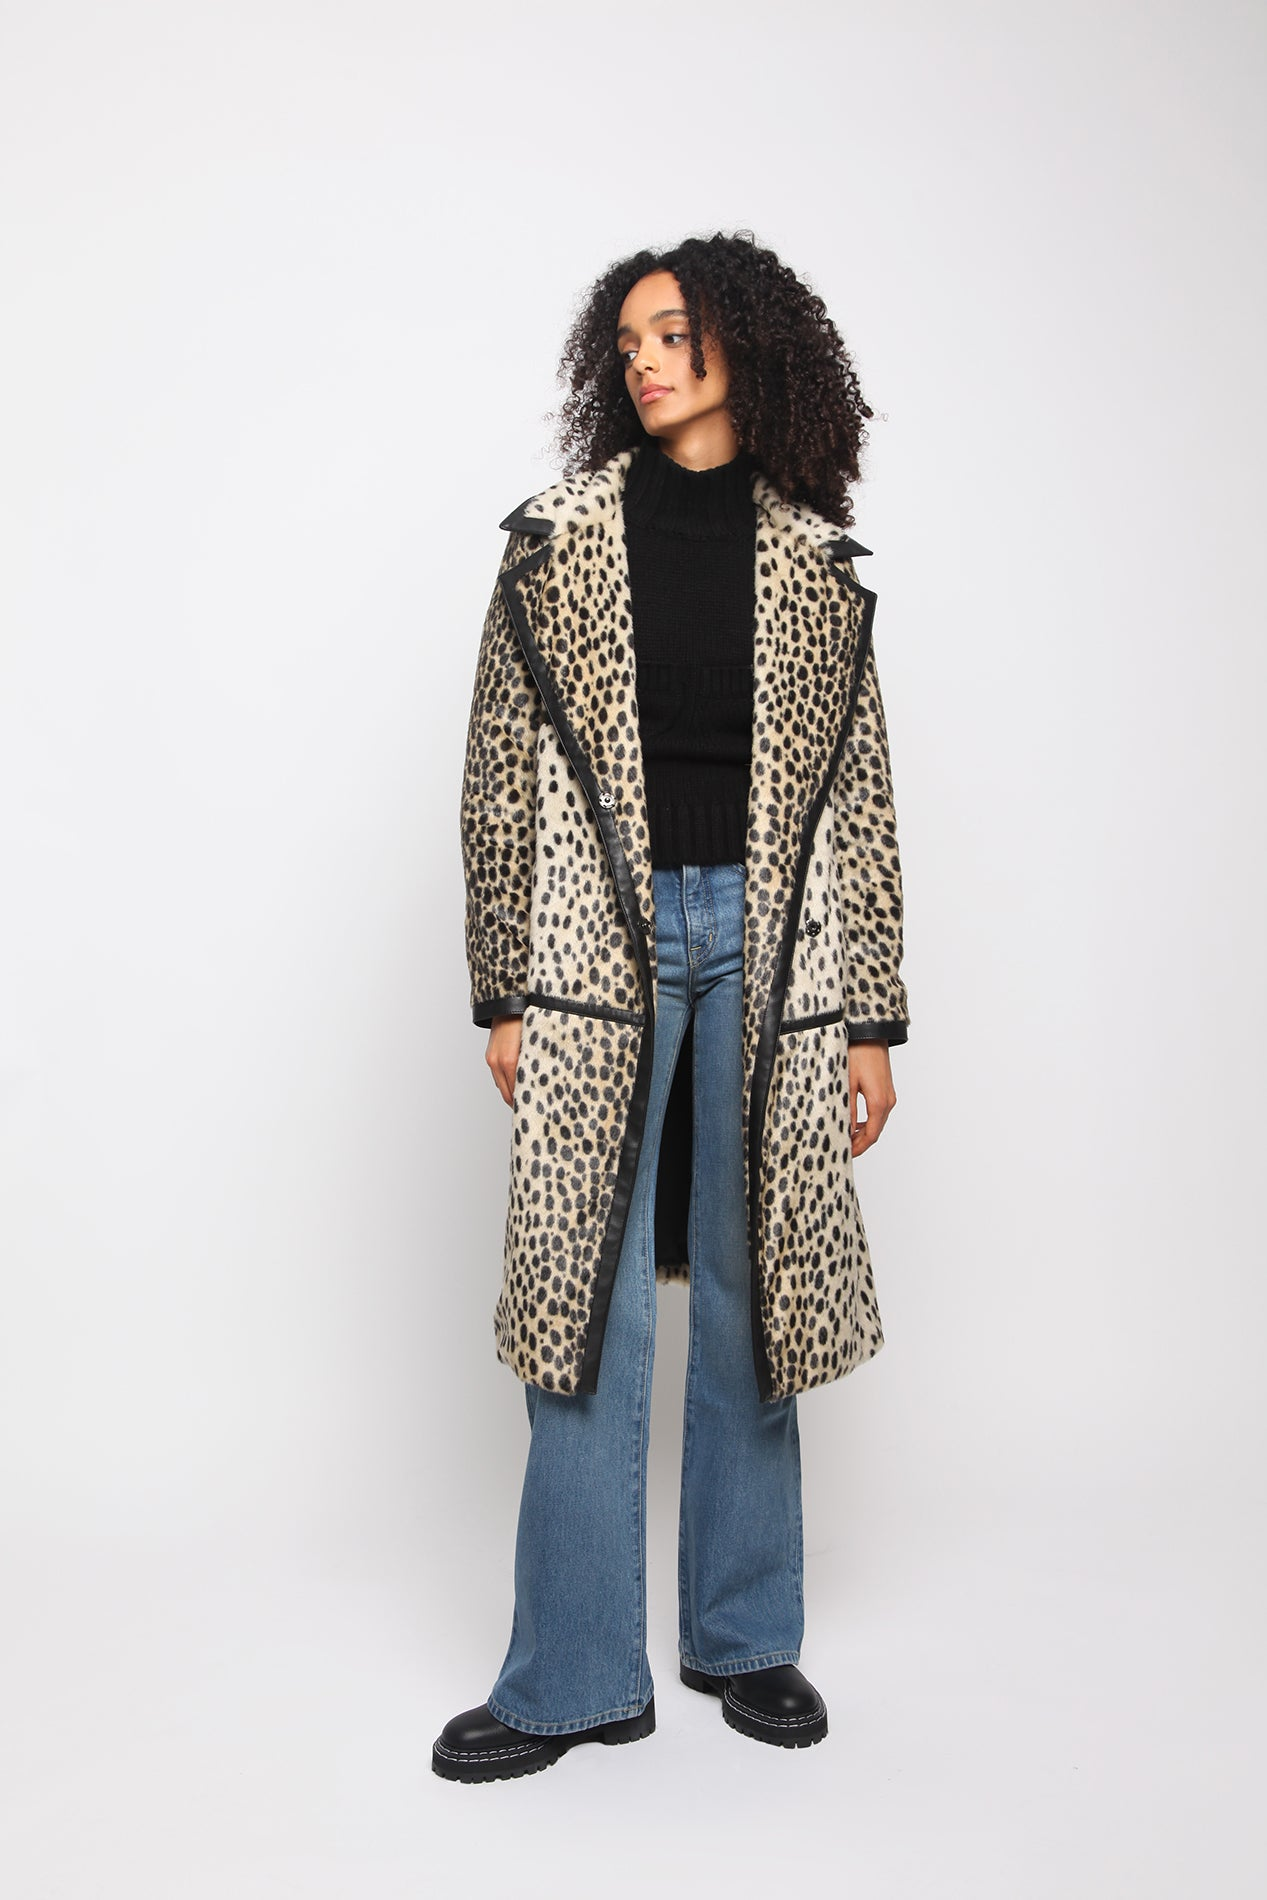 Dotty Jacket - Leopard - Model Shot